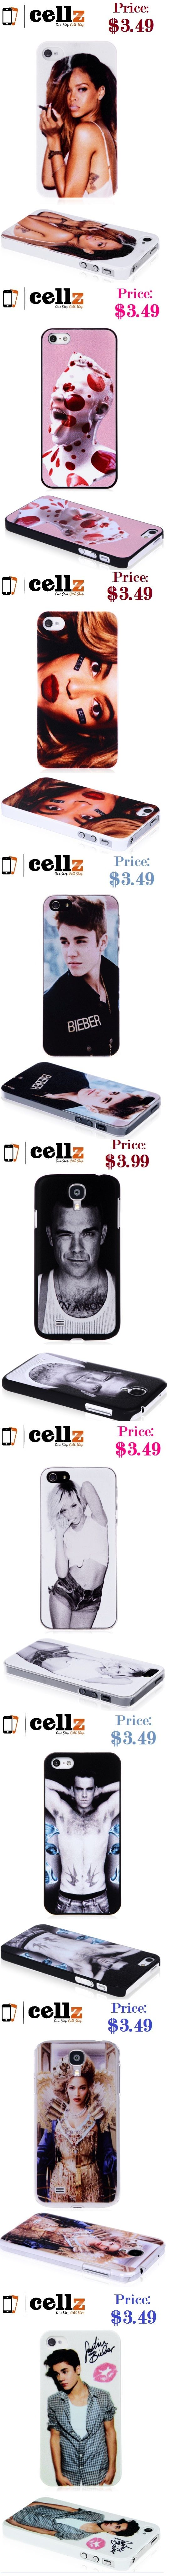 Famous Singers Celebrities Smartphone Cases for iPhone 4 5 and Samsung Galaxy S4 #famous #singer #celebrities #smartphone #cases #iphone4 #samsungS4 #galaxyS4case #beyoncecase #rihannacover #bieberiphonecase #robbiewilliams #case #iphonecover $3.49